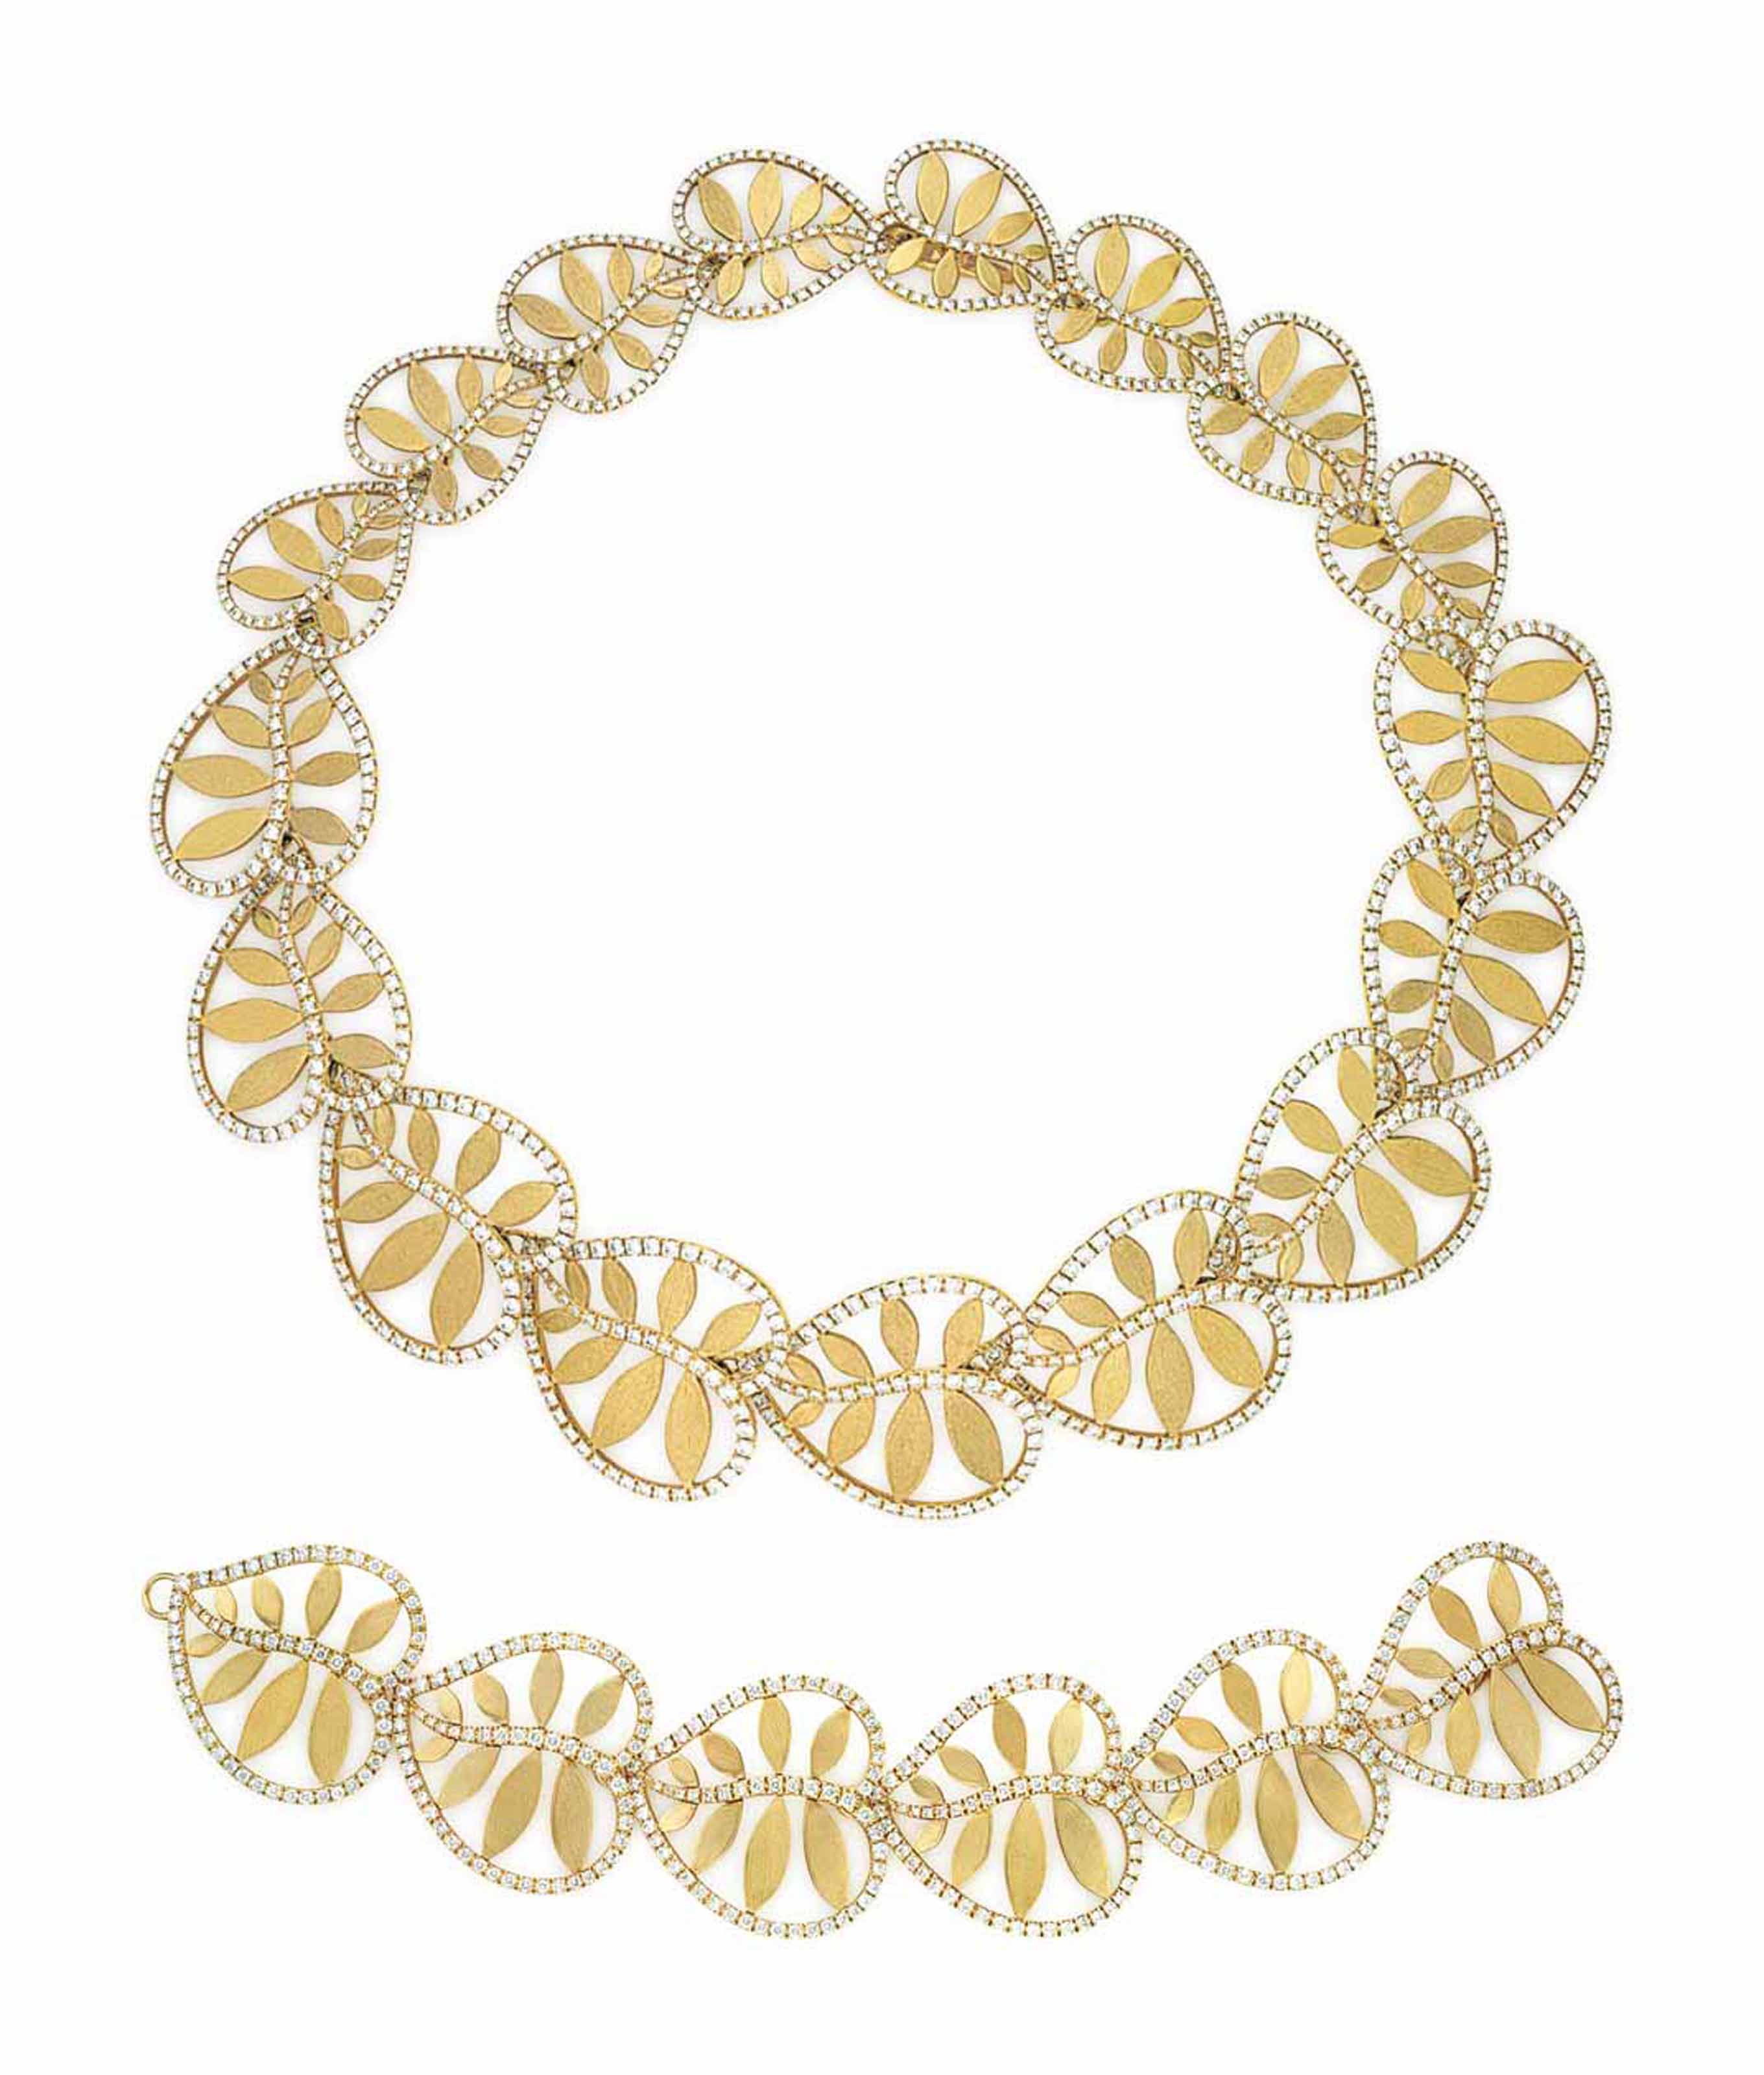 A SET OF GOLD AND DIAMOND 'PALM' JEWELRY, BY PALOMA PICASSO, TIFFANY & CO.